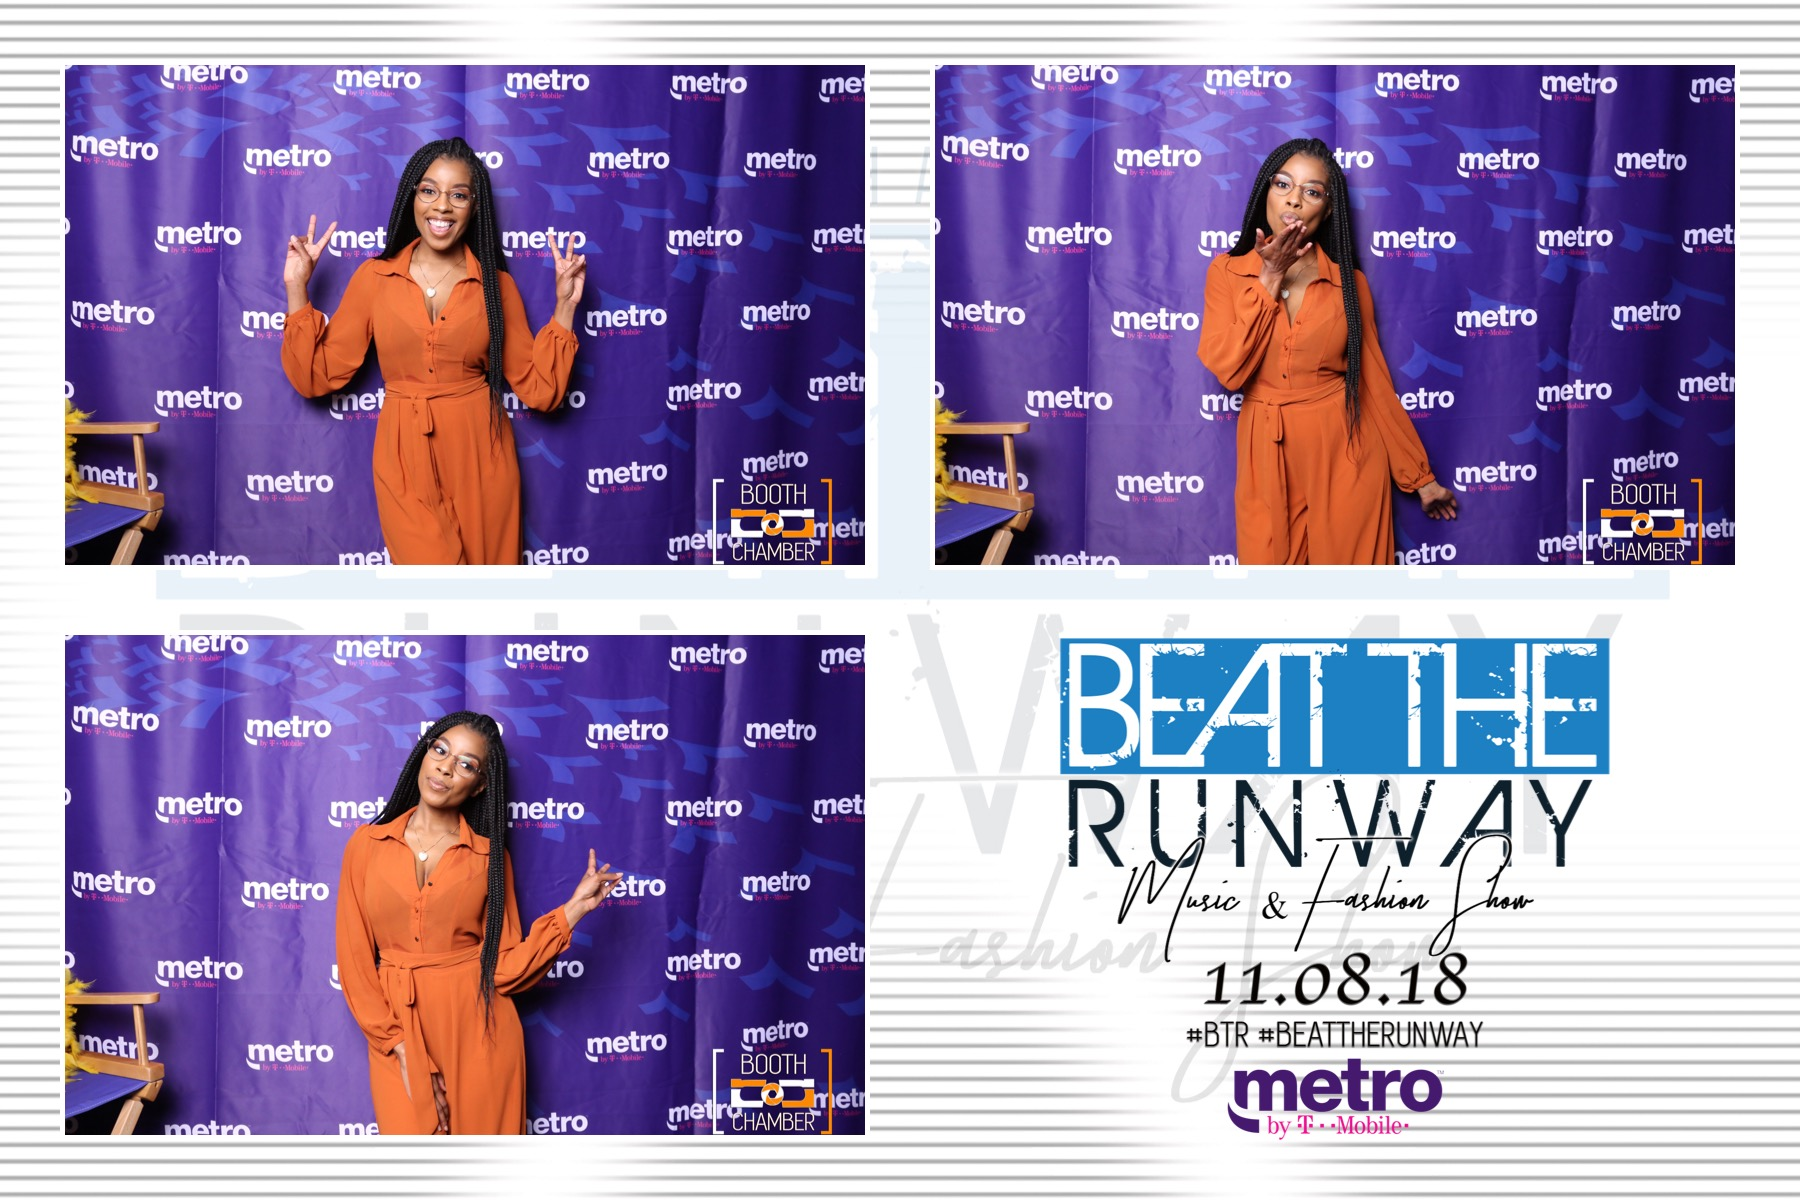 Booth Chamber Photo Booth Beat the Runway Antoine Hart 20181108_3 (1).jpeg